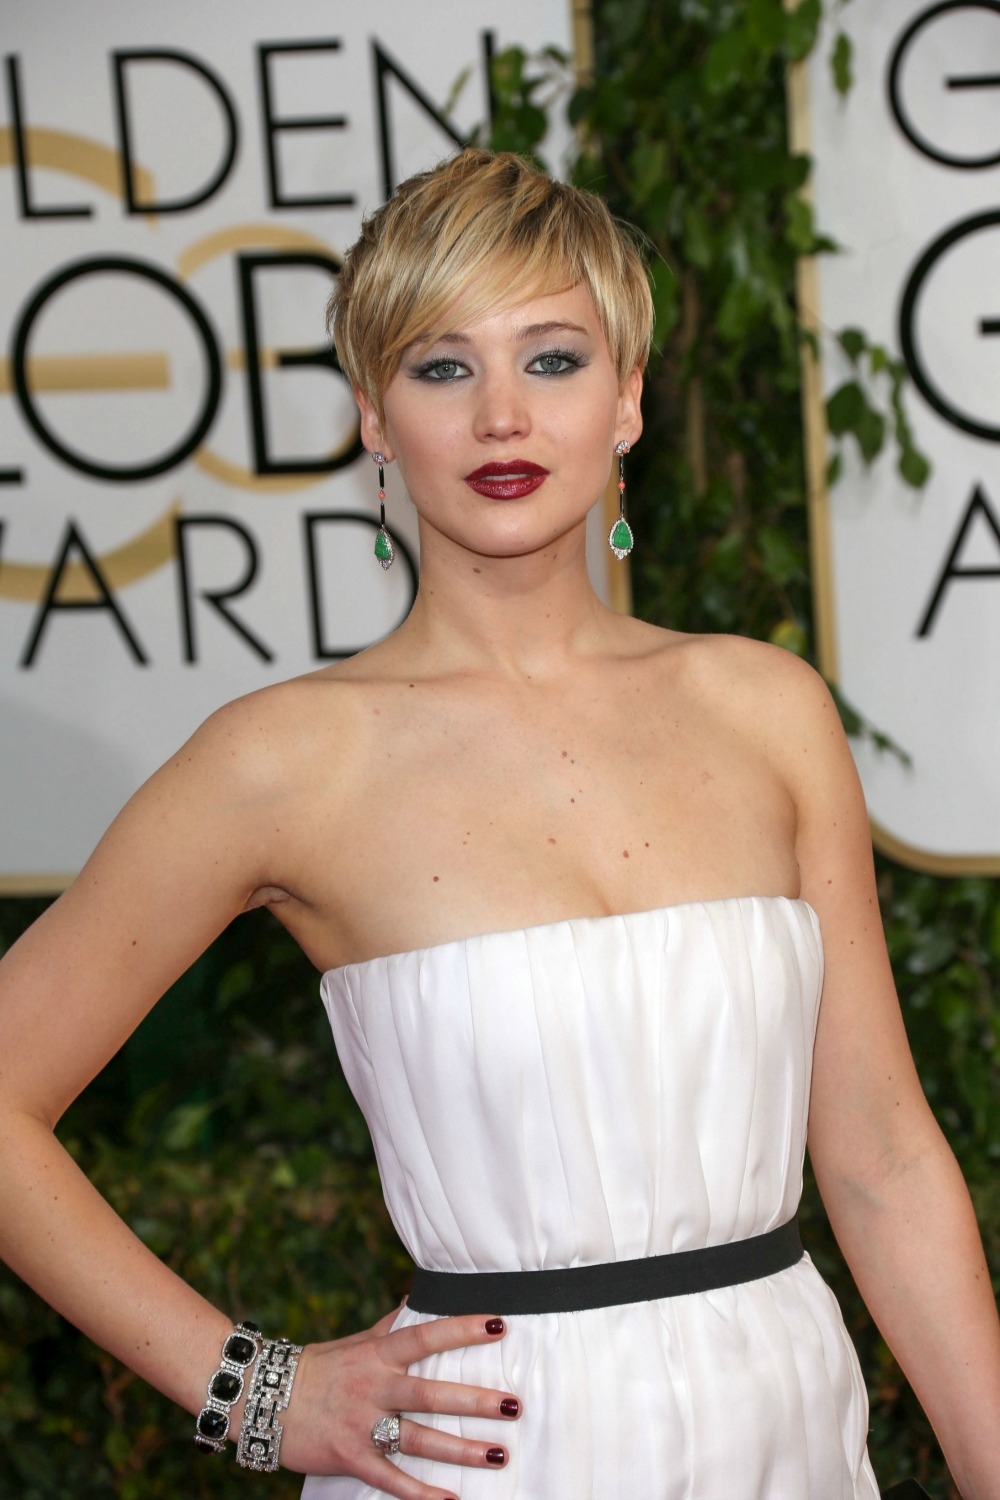 The Pixie Haircut Celebrity Women Who Sport The Look